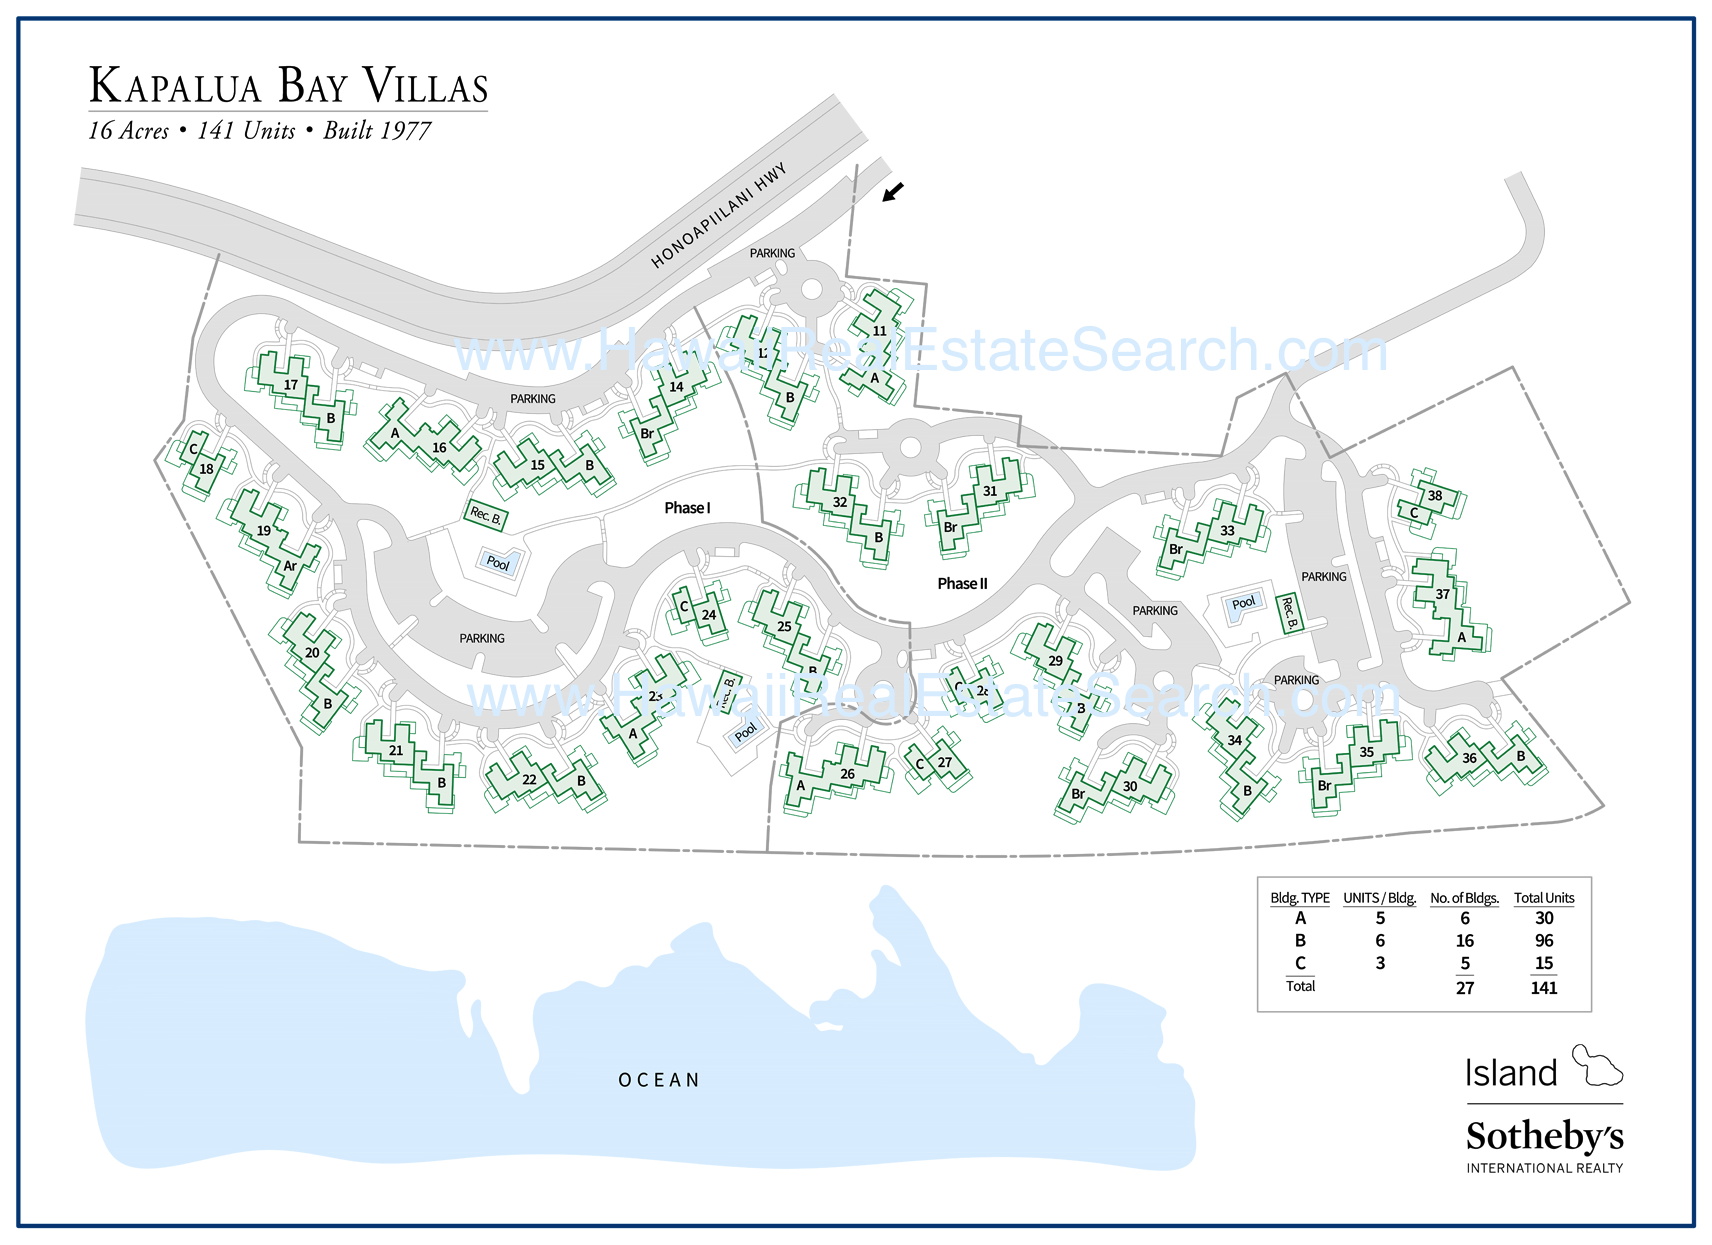 kapalua bay villas map 2018